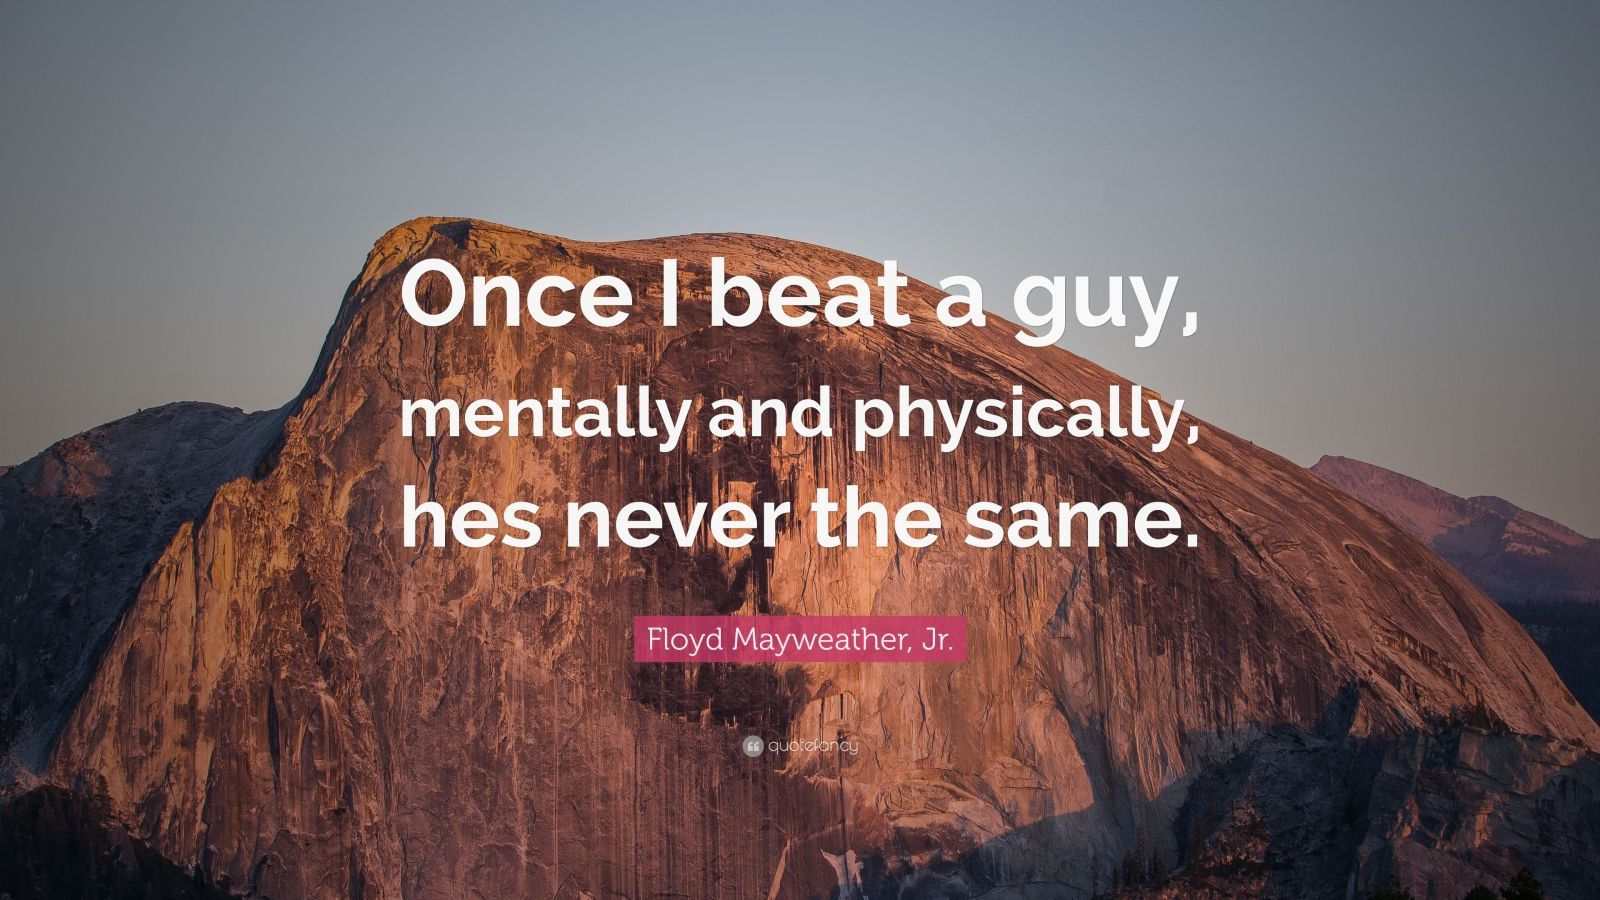 """Floyd Mayweather, Jr. Quote: """"Once I beat a guy, mentally and physically, hes never the same."""""""